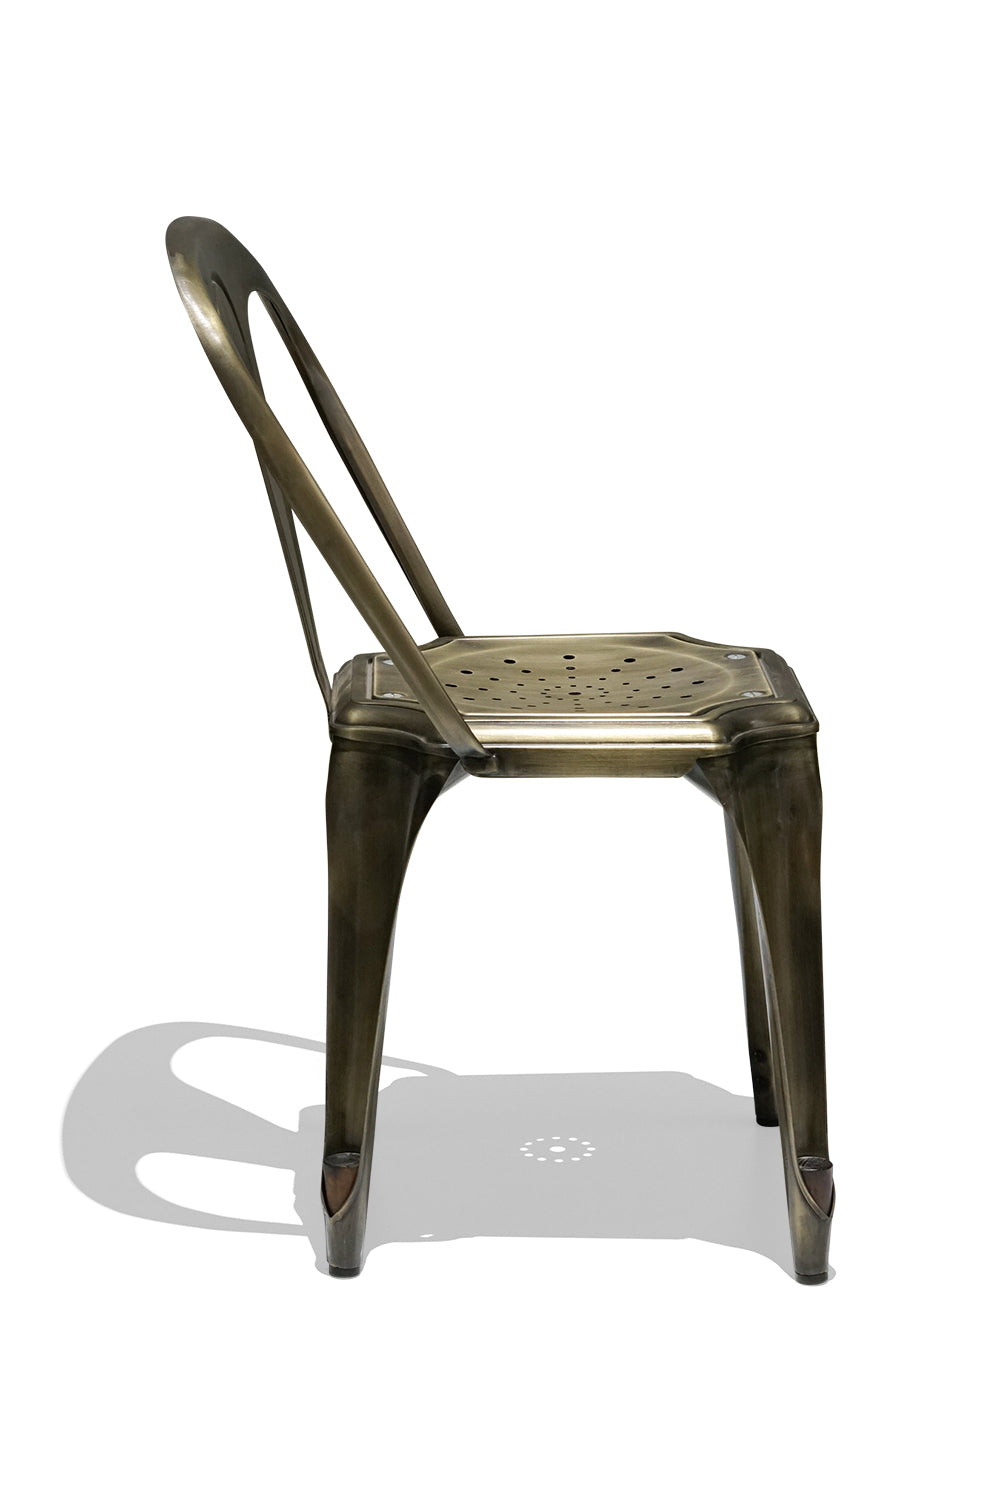 MILTON chair